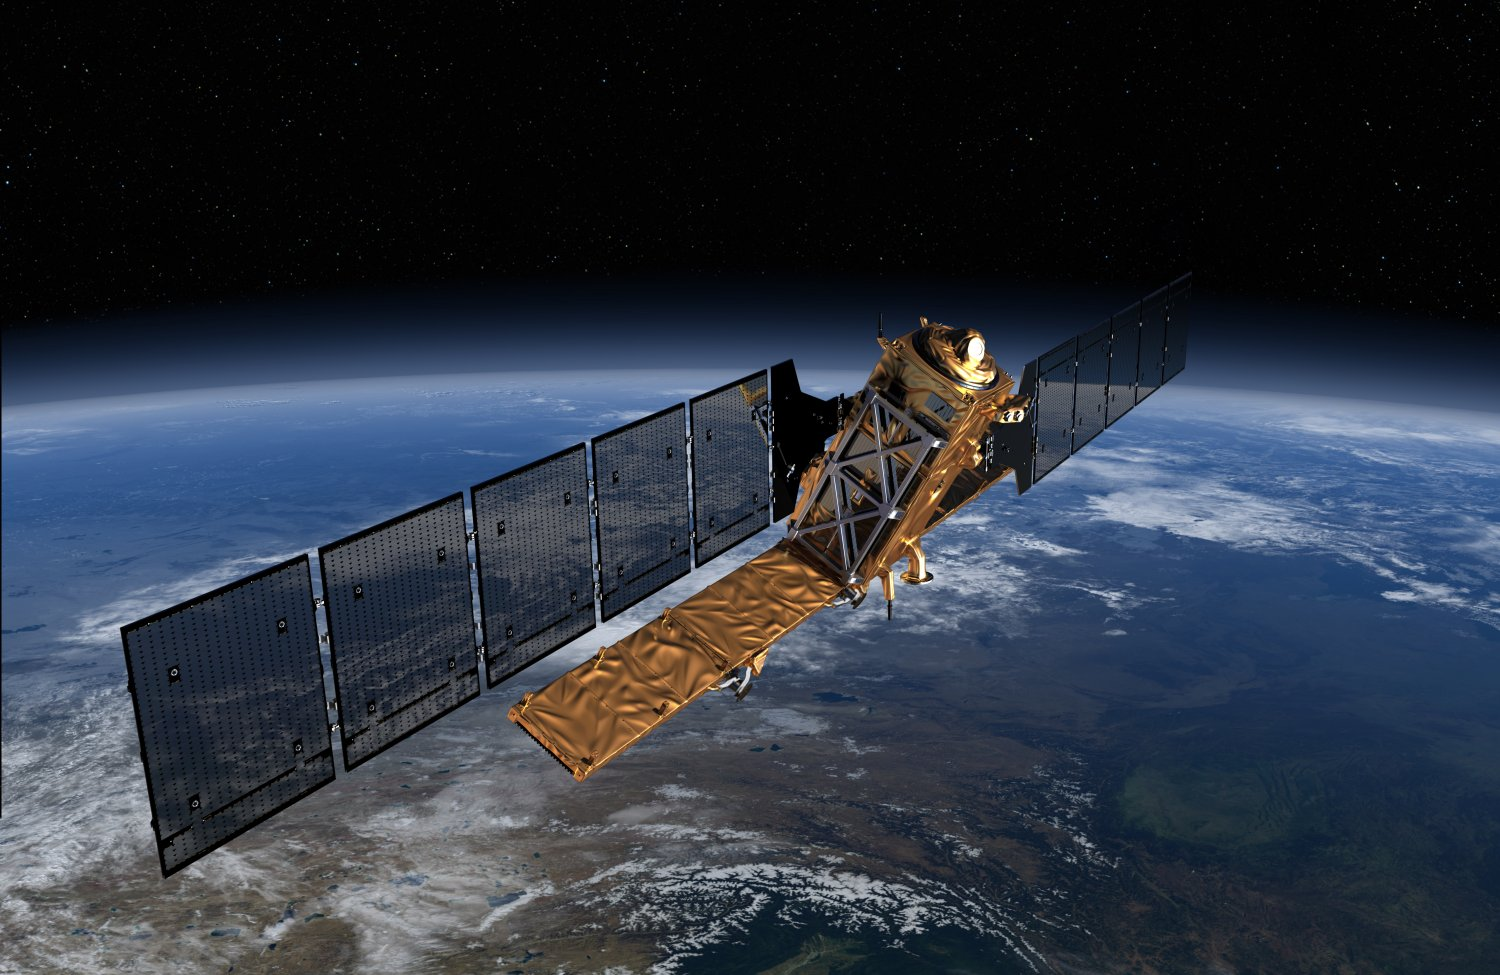 The Dundee facility collects images taken by satellites